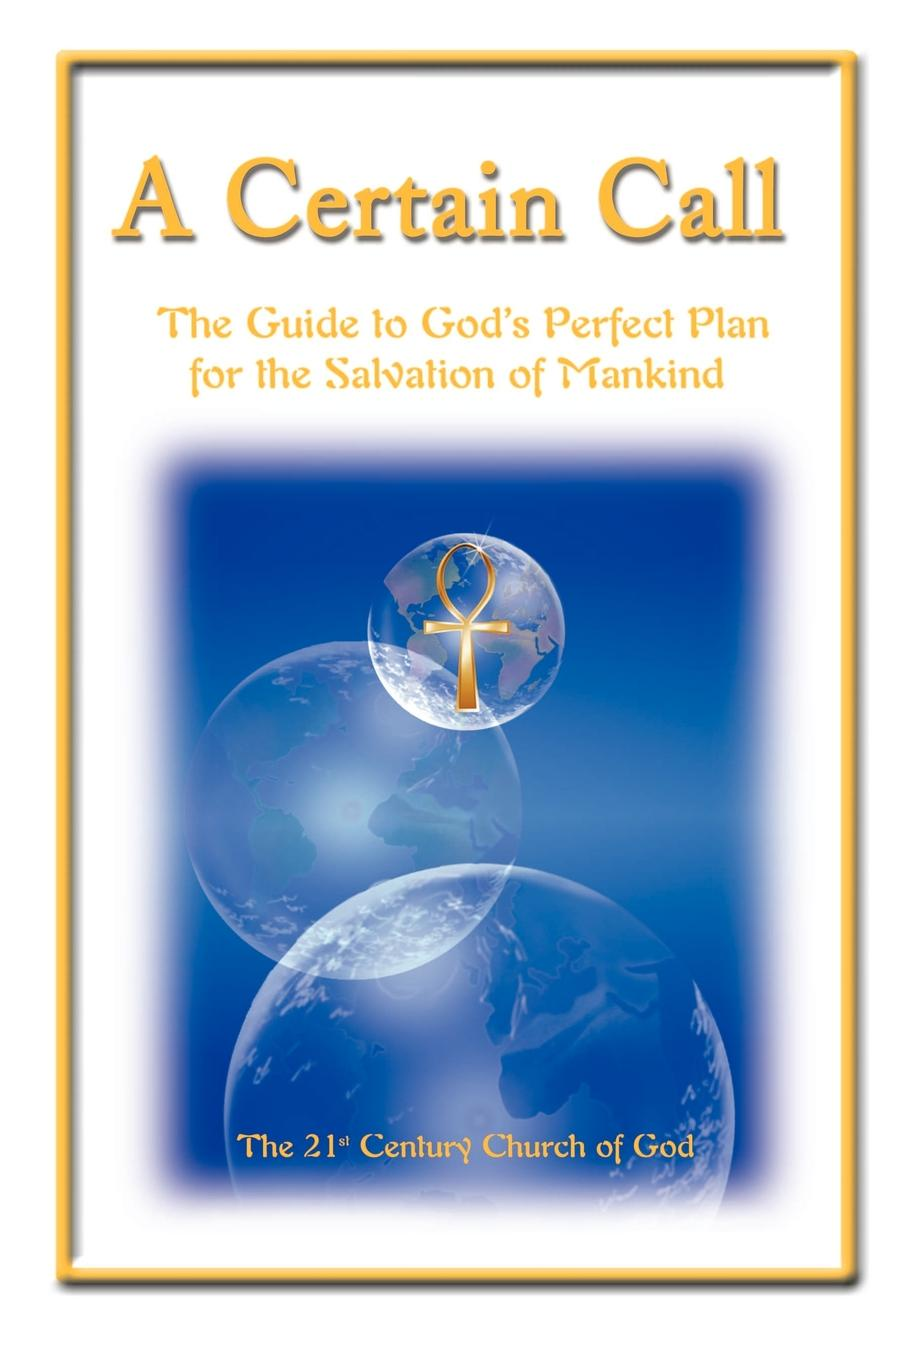 21st Century Church of God, &&St Century Church Of God A Certain Call. The Guide to God's Perfect Plan for the Salvation of Mankind john shook r the god debates a 21st century guide for atheists and believers and everyone in between